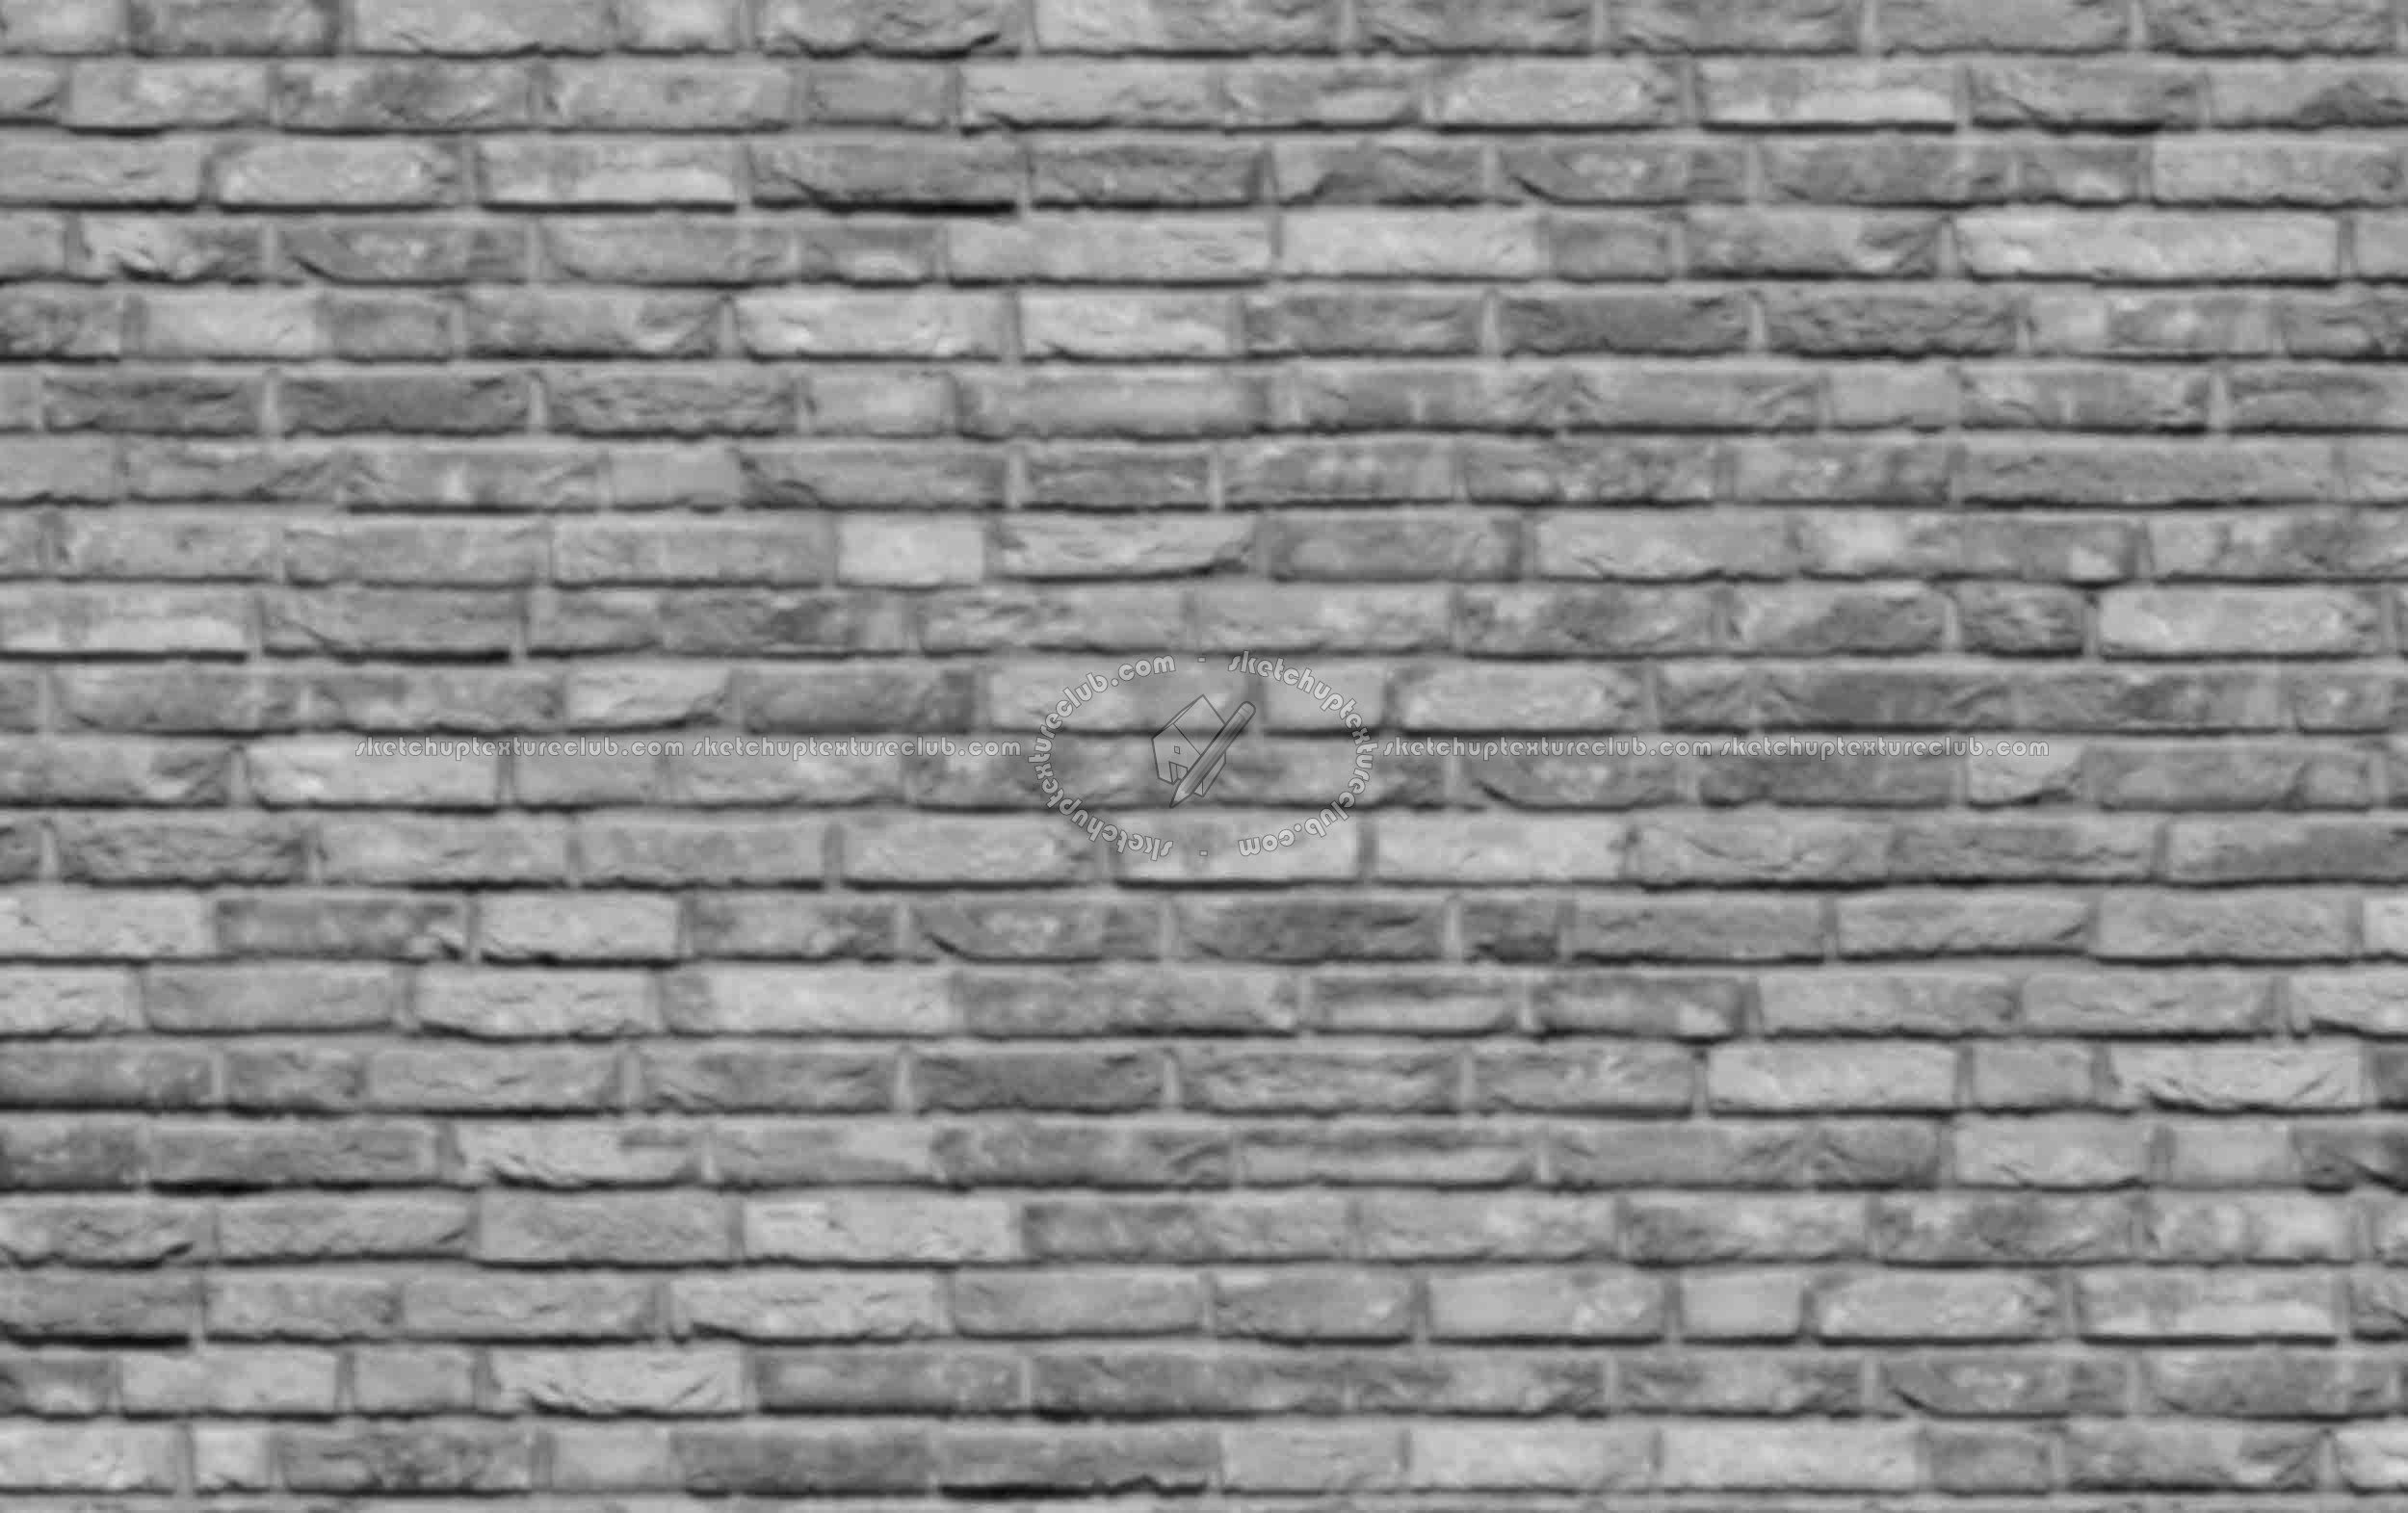 Old Brick Wall Texture Beautiful Old Wall Brick Texture Seamless